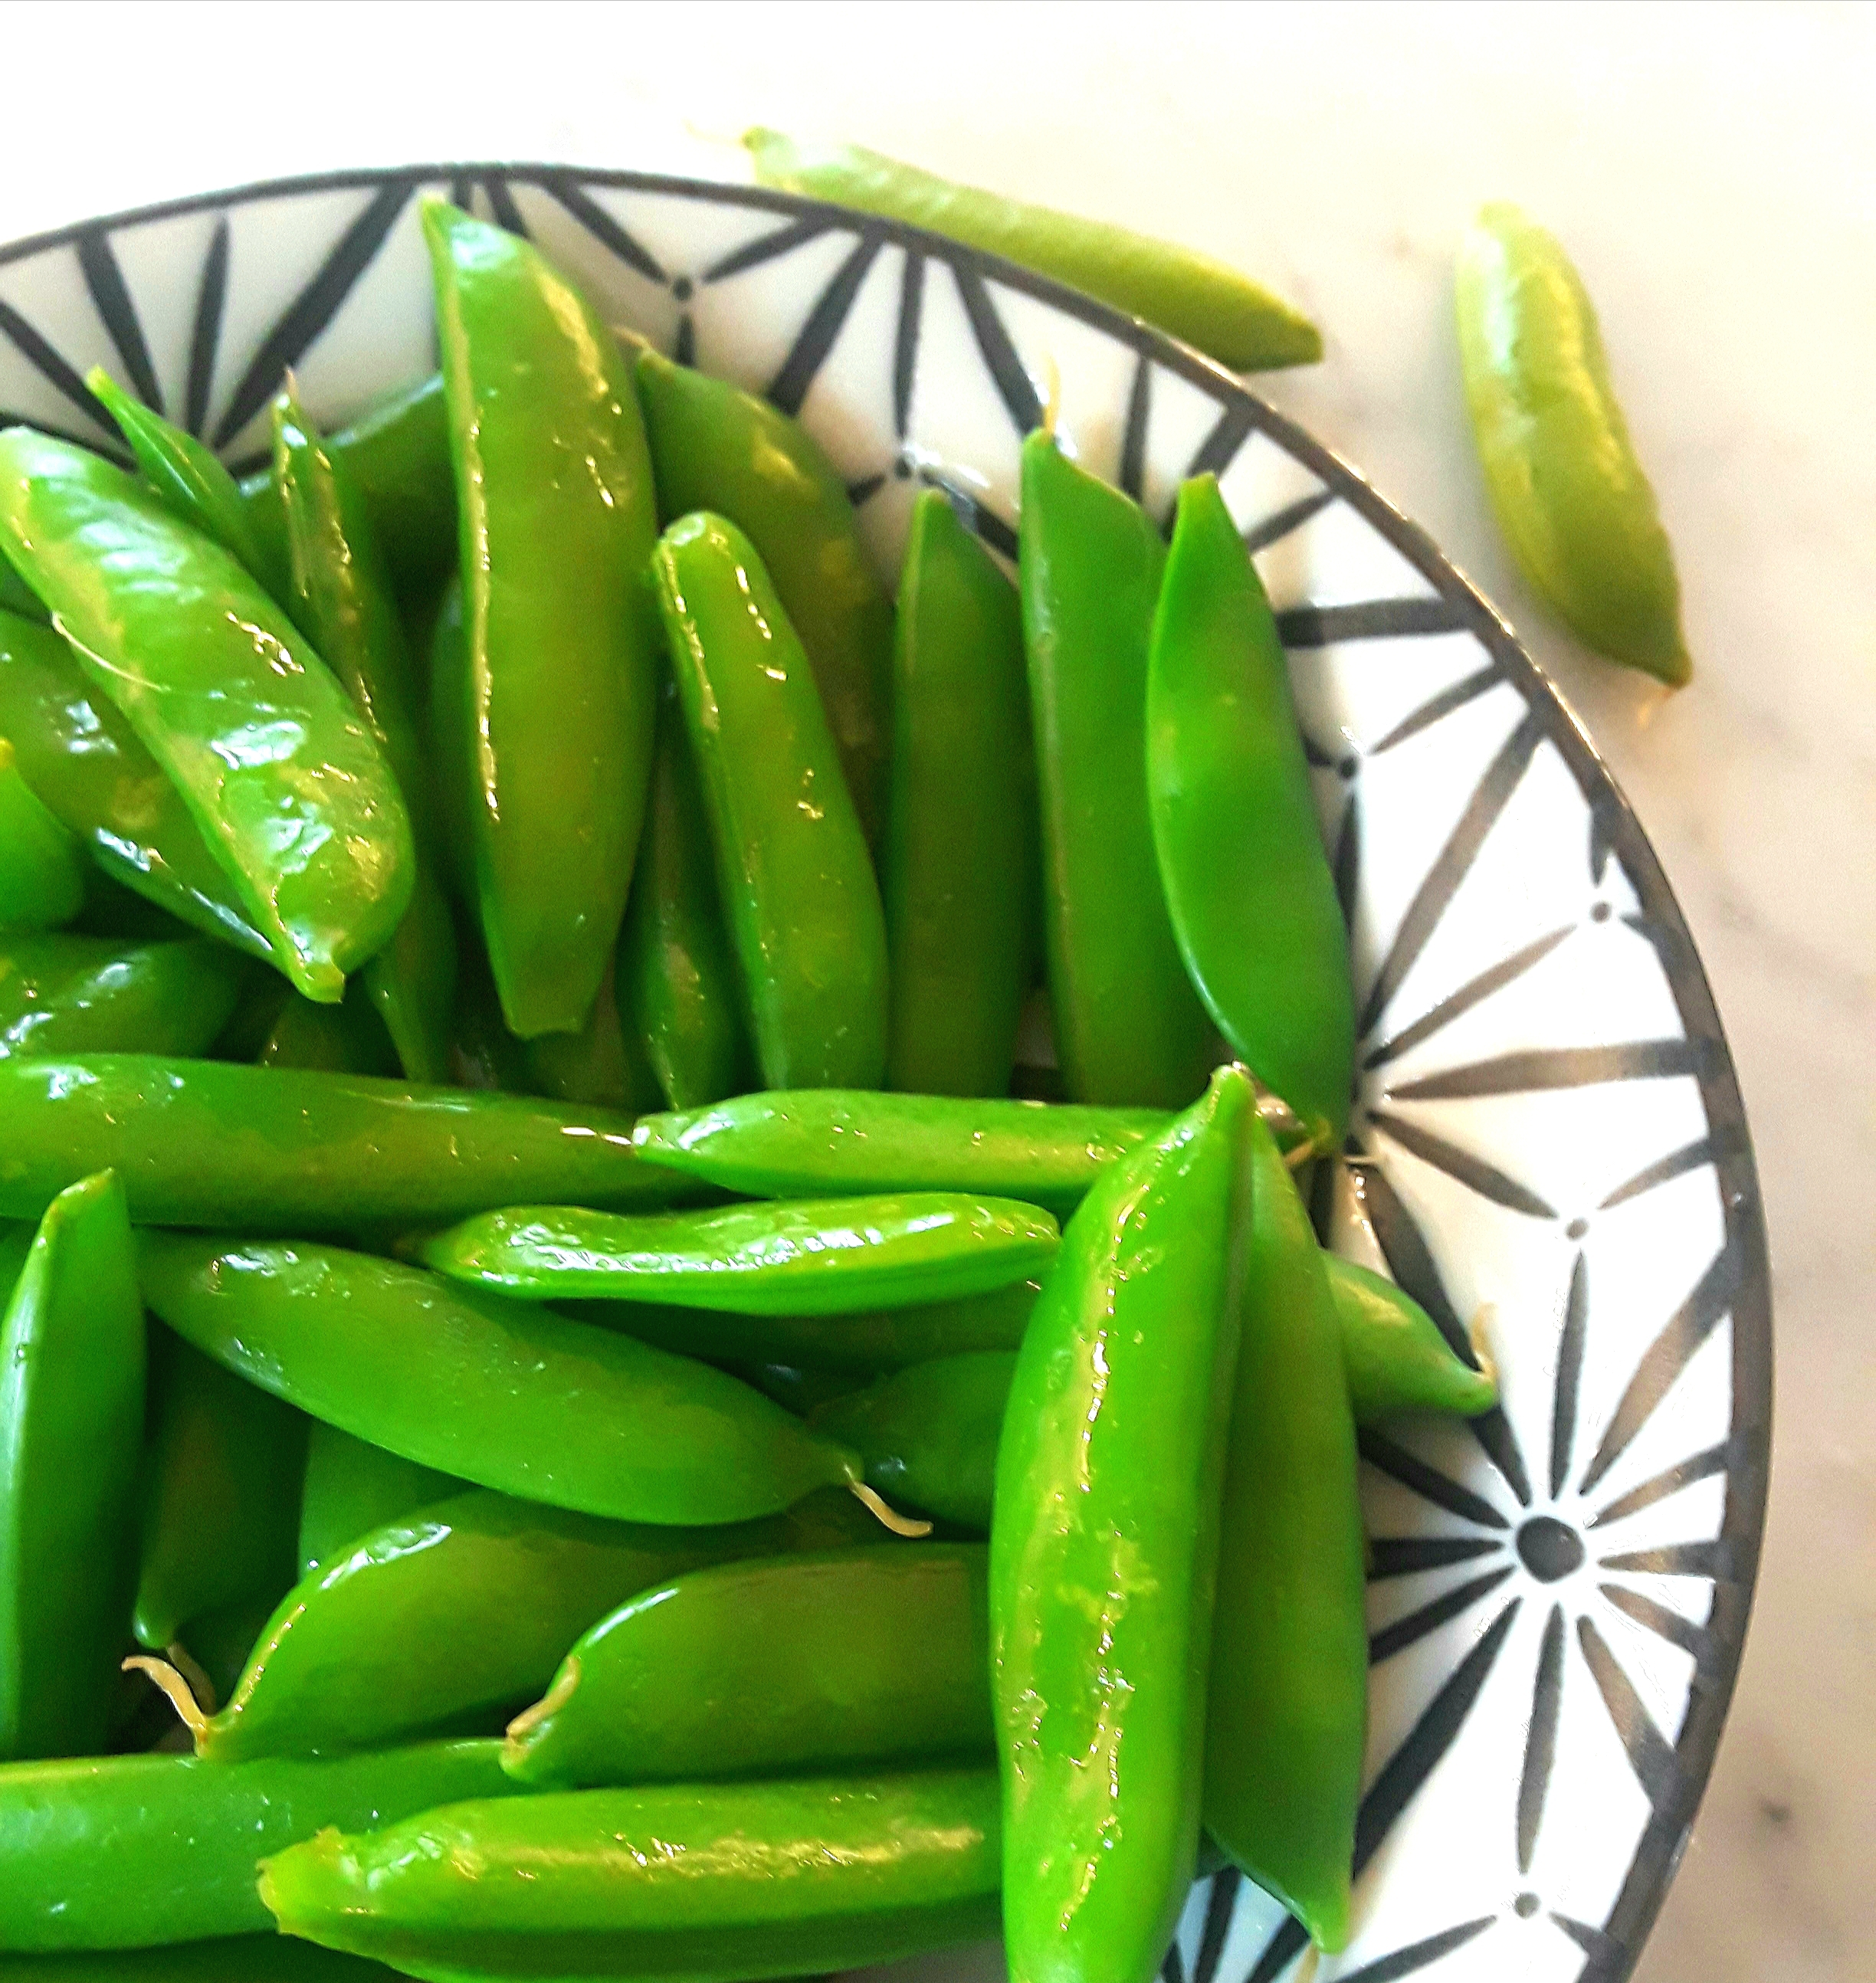 A bowl of vibrant, green, sugar snap peas is tasty.